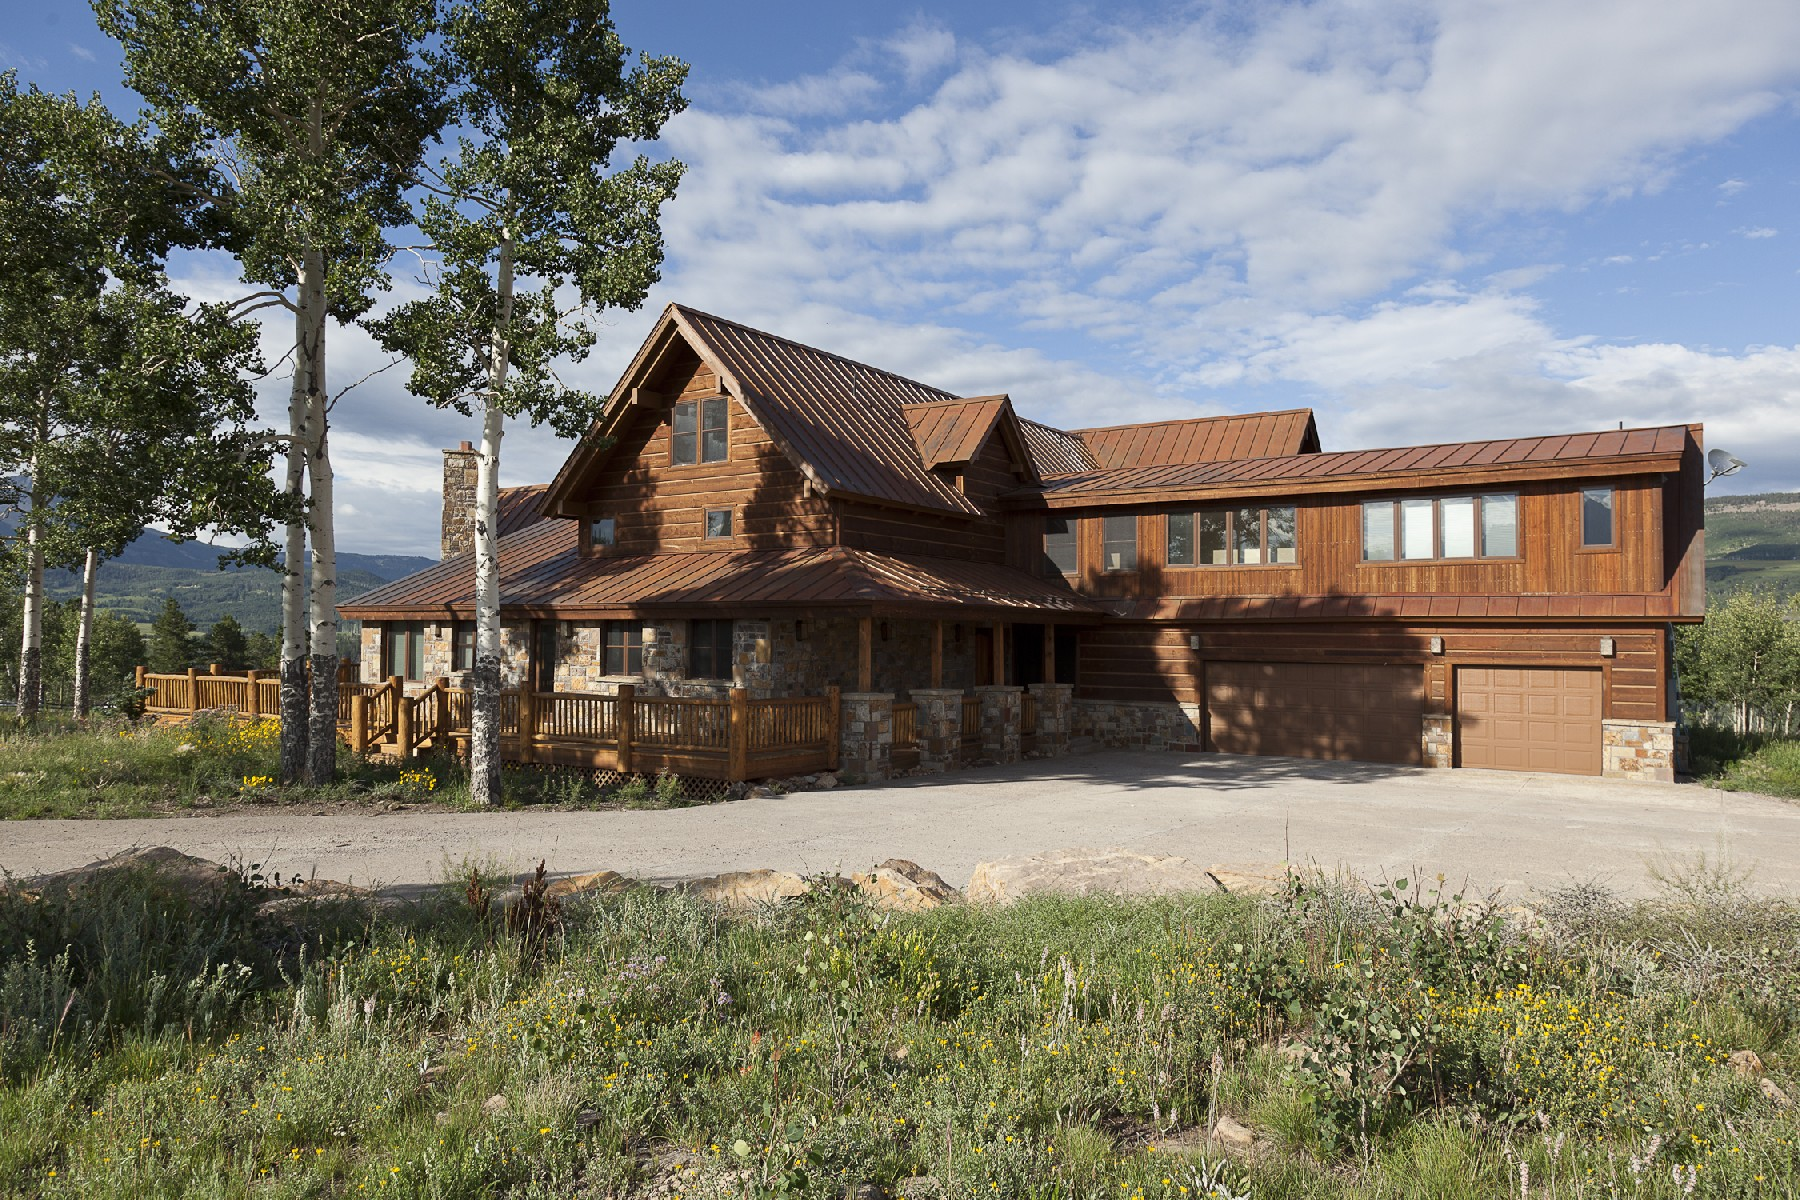 United states telluride berman buckskin ranch for sale for Ranch style homes in colorado